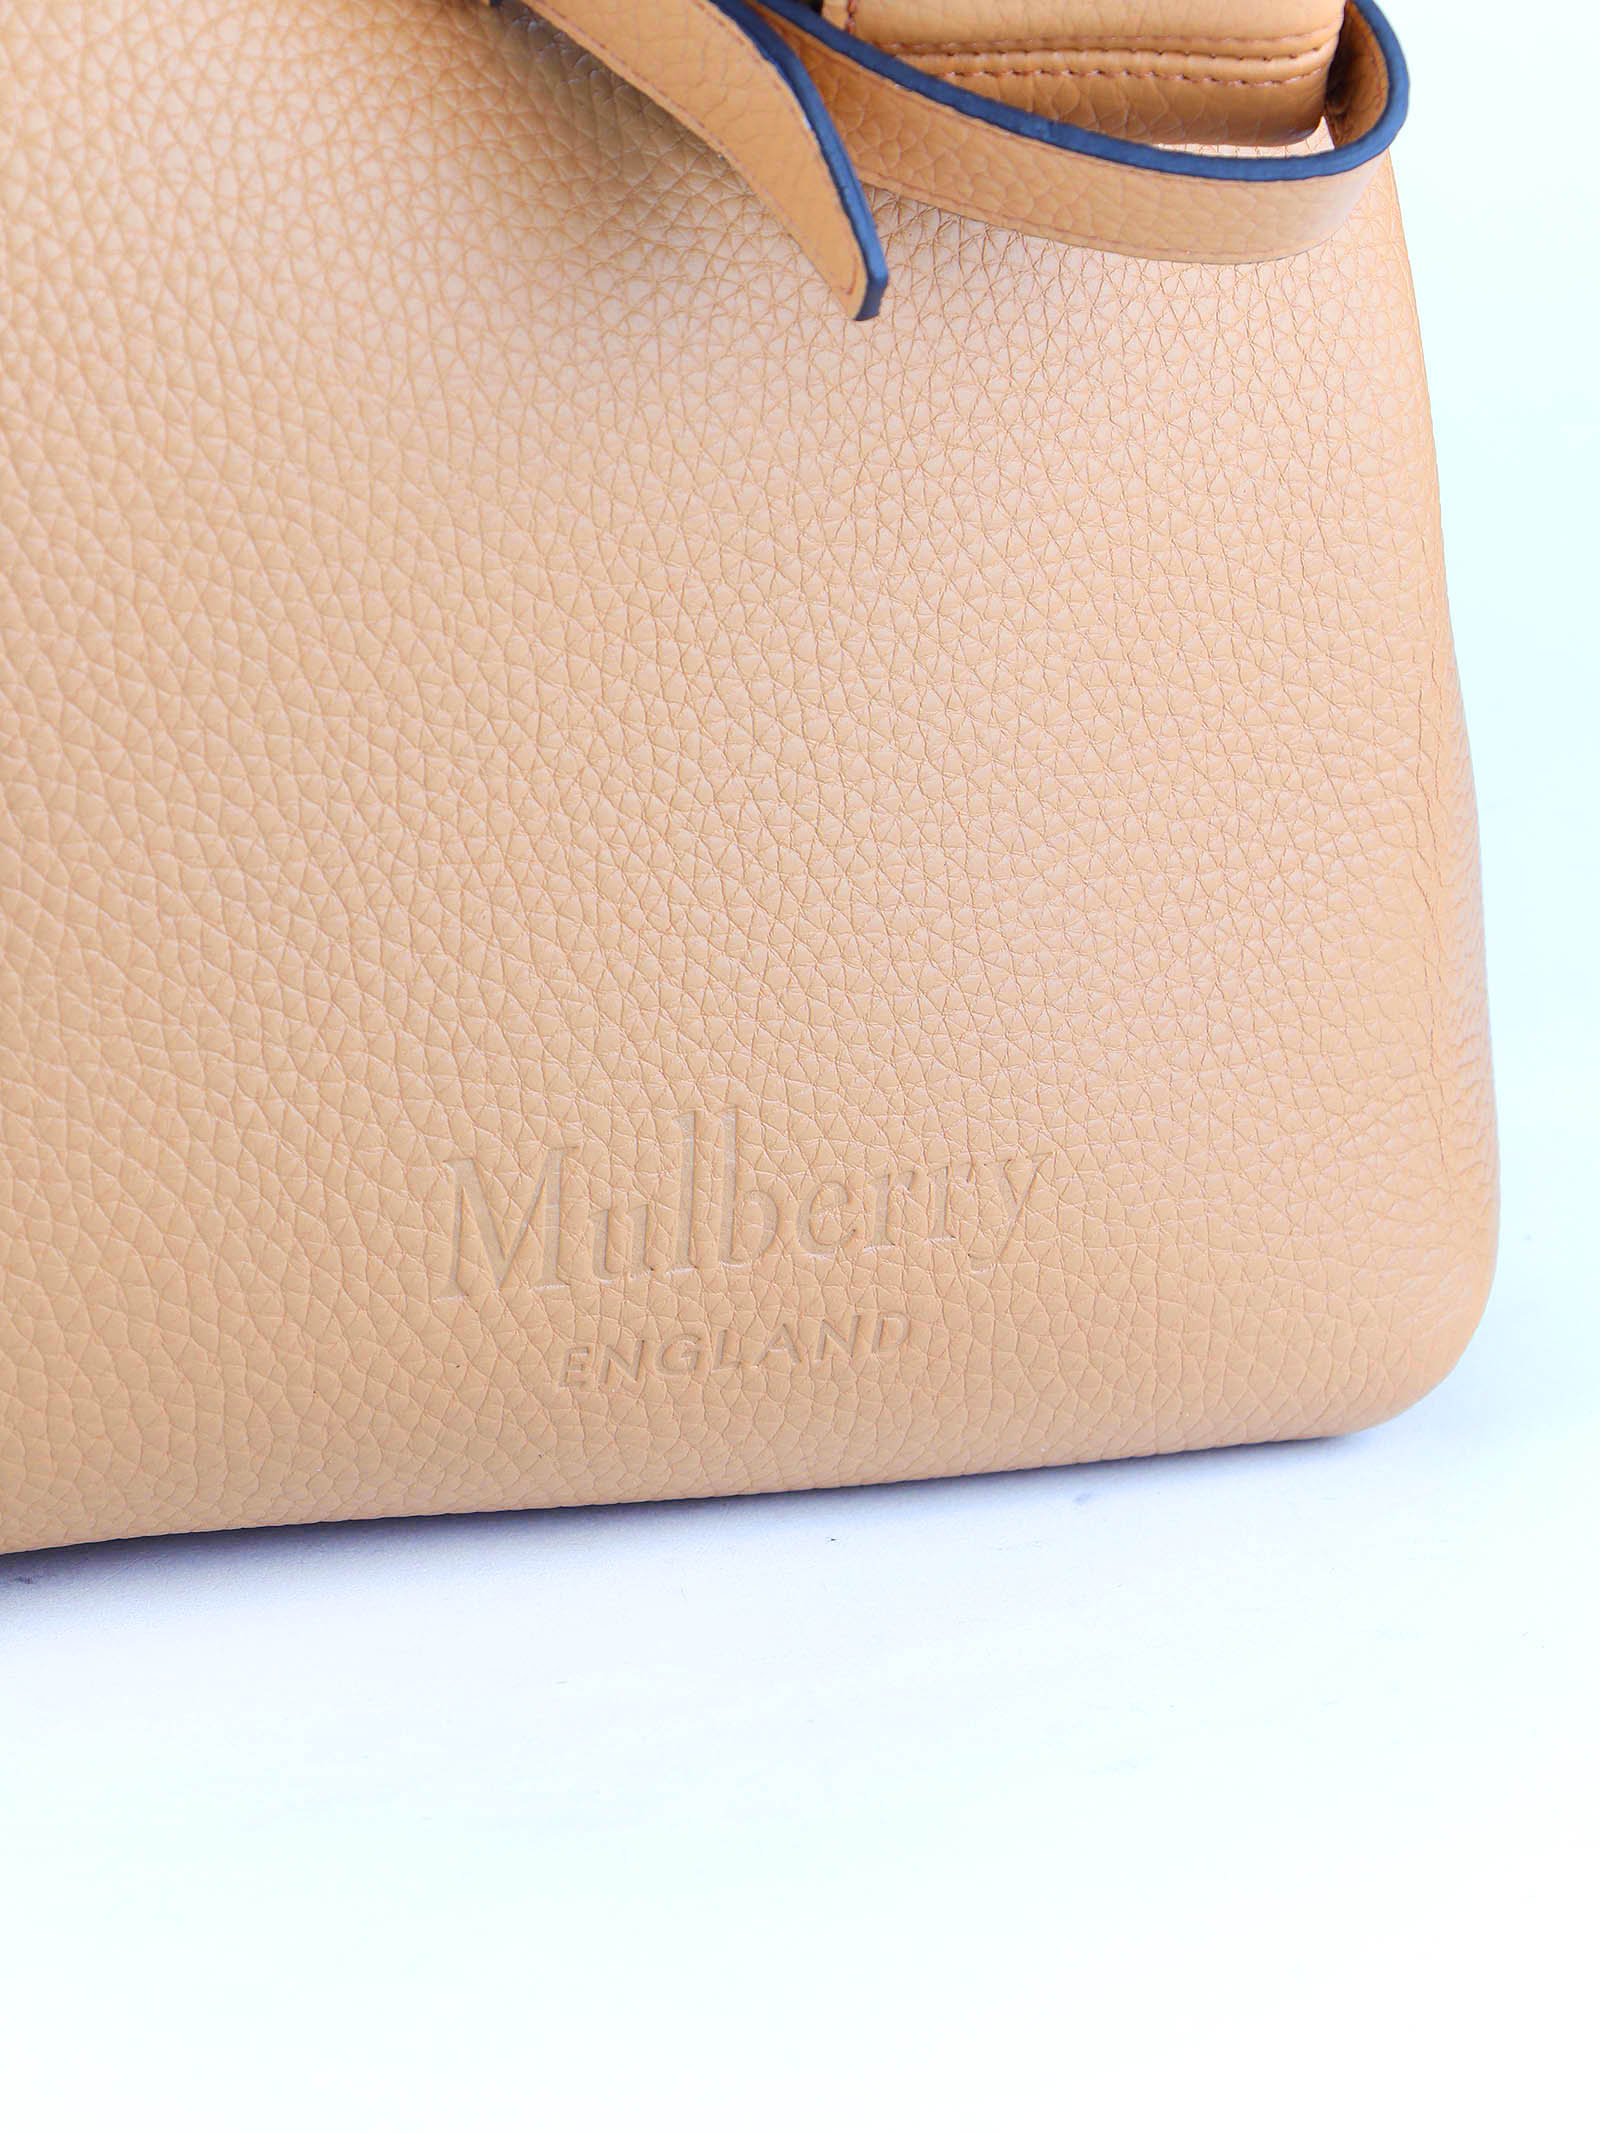 Immagine di Mulberry | Oversized Portobello Tote